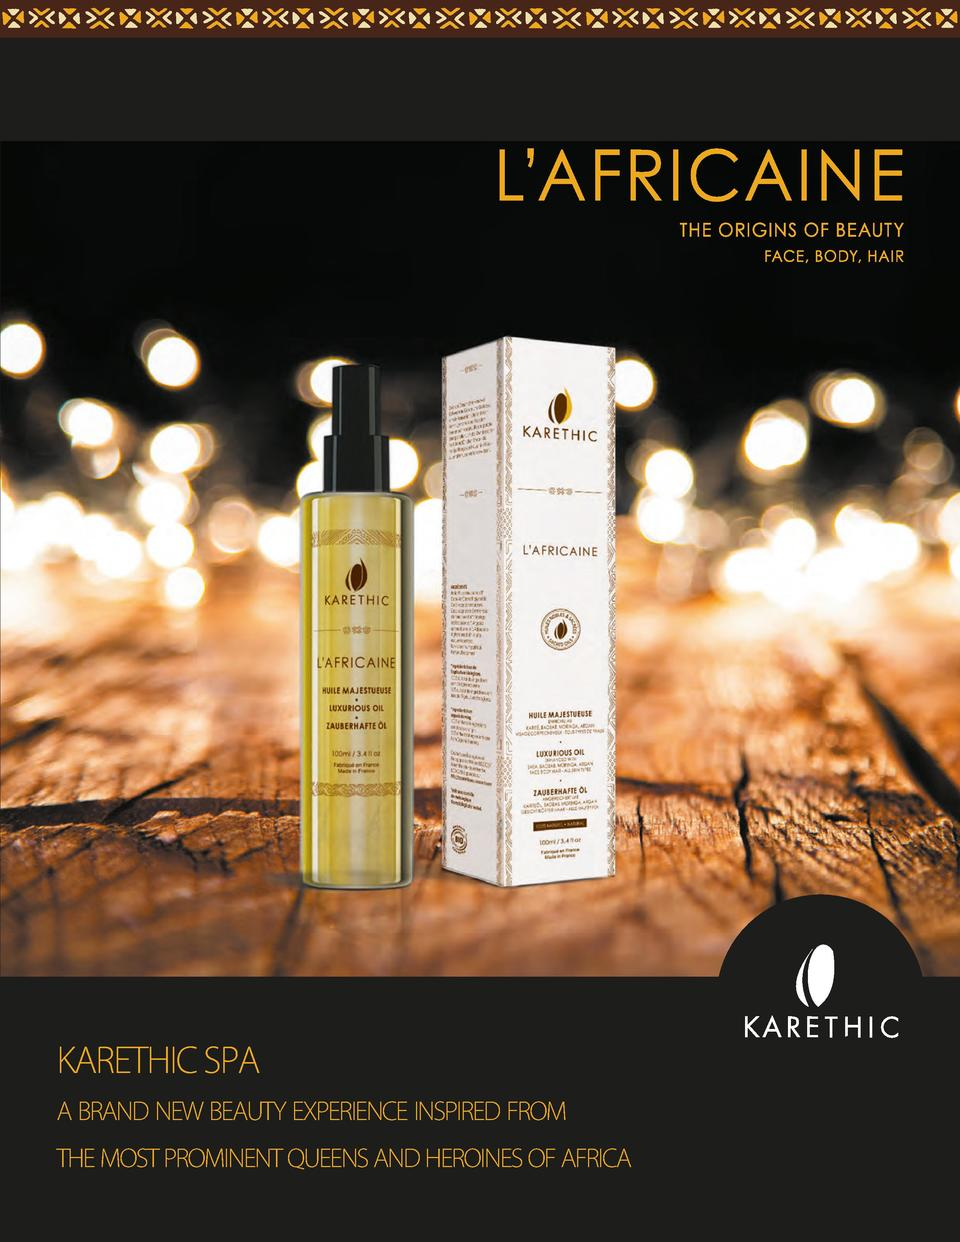 KARETHIC SPA a brand new beauty experience inspired from the most prominent queens and heroines of africa